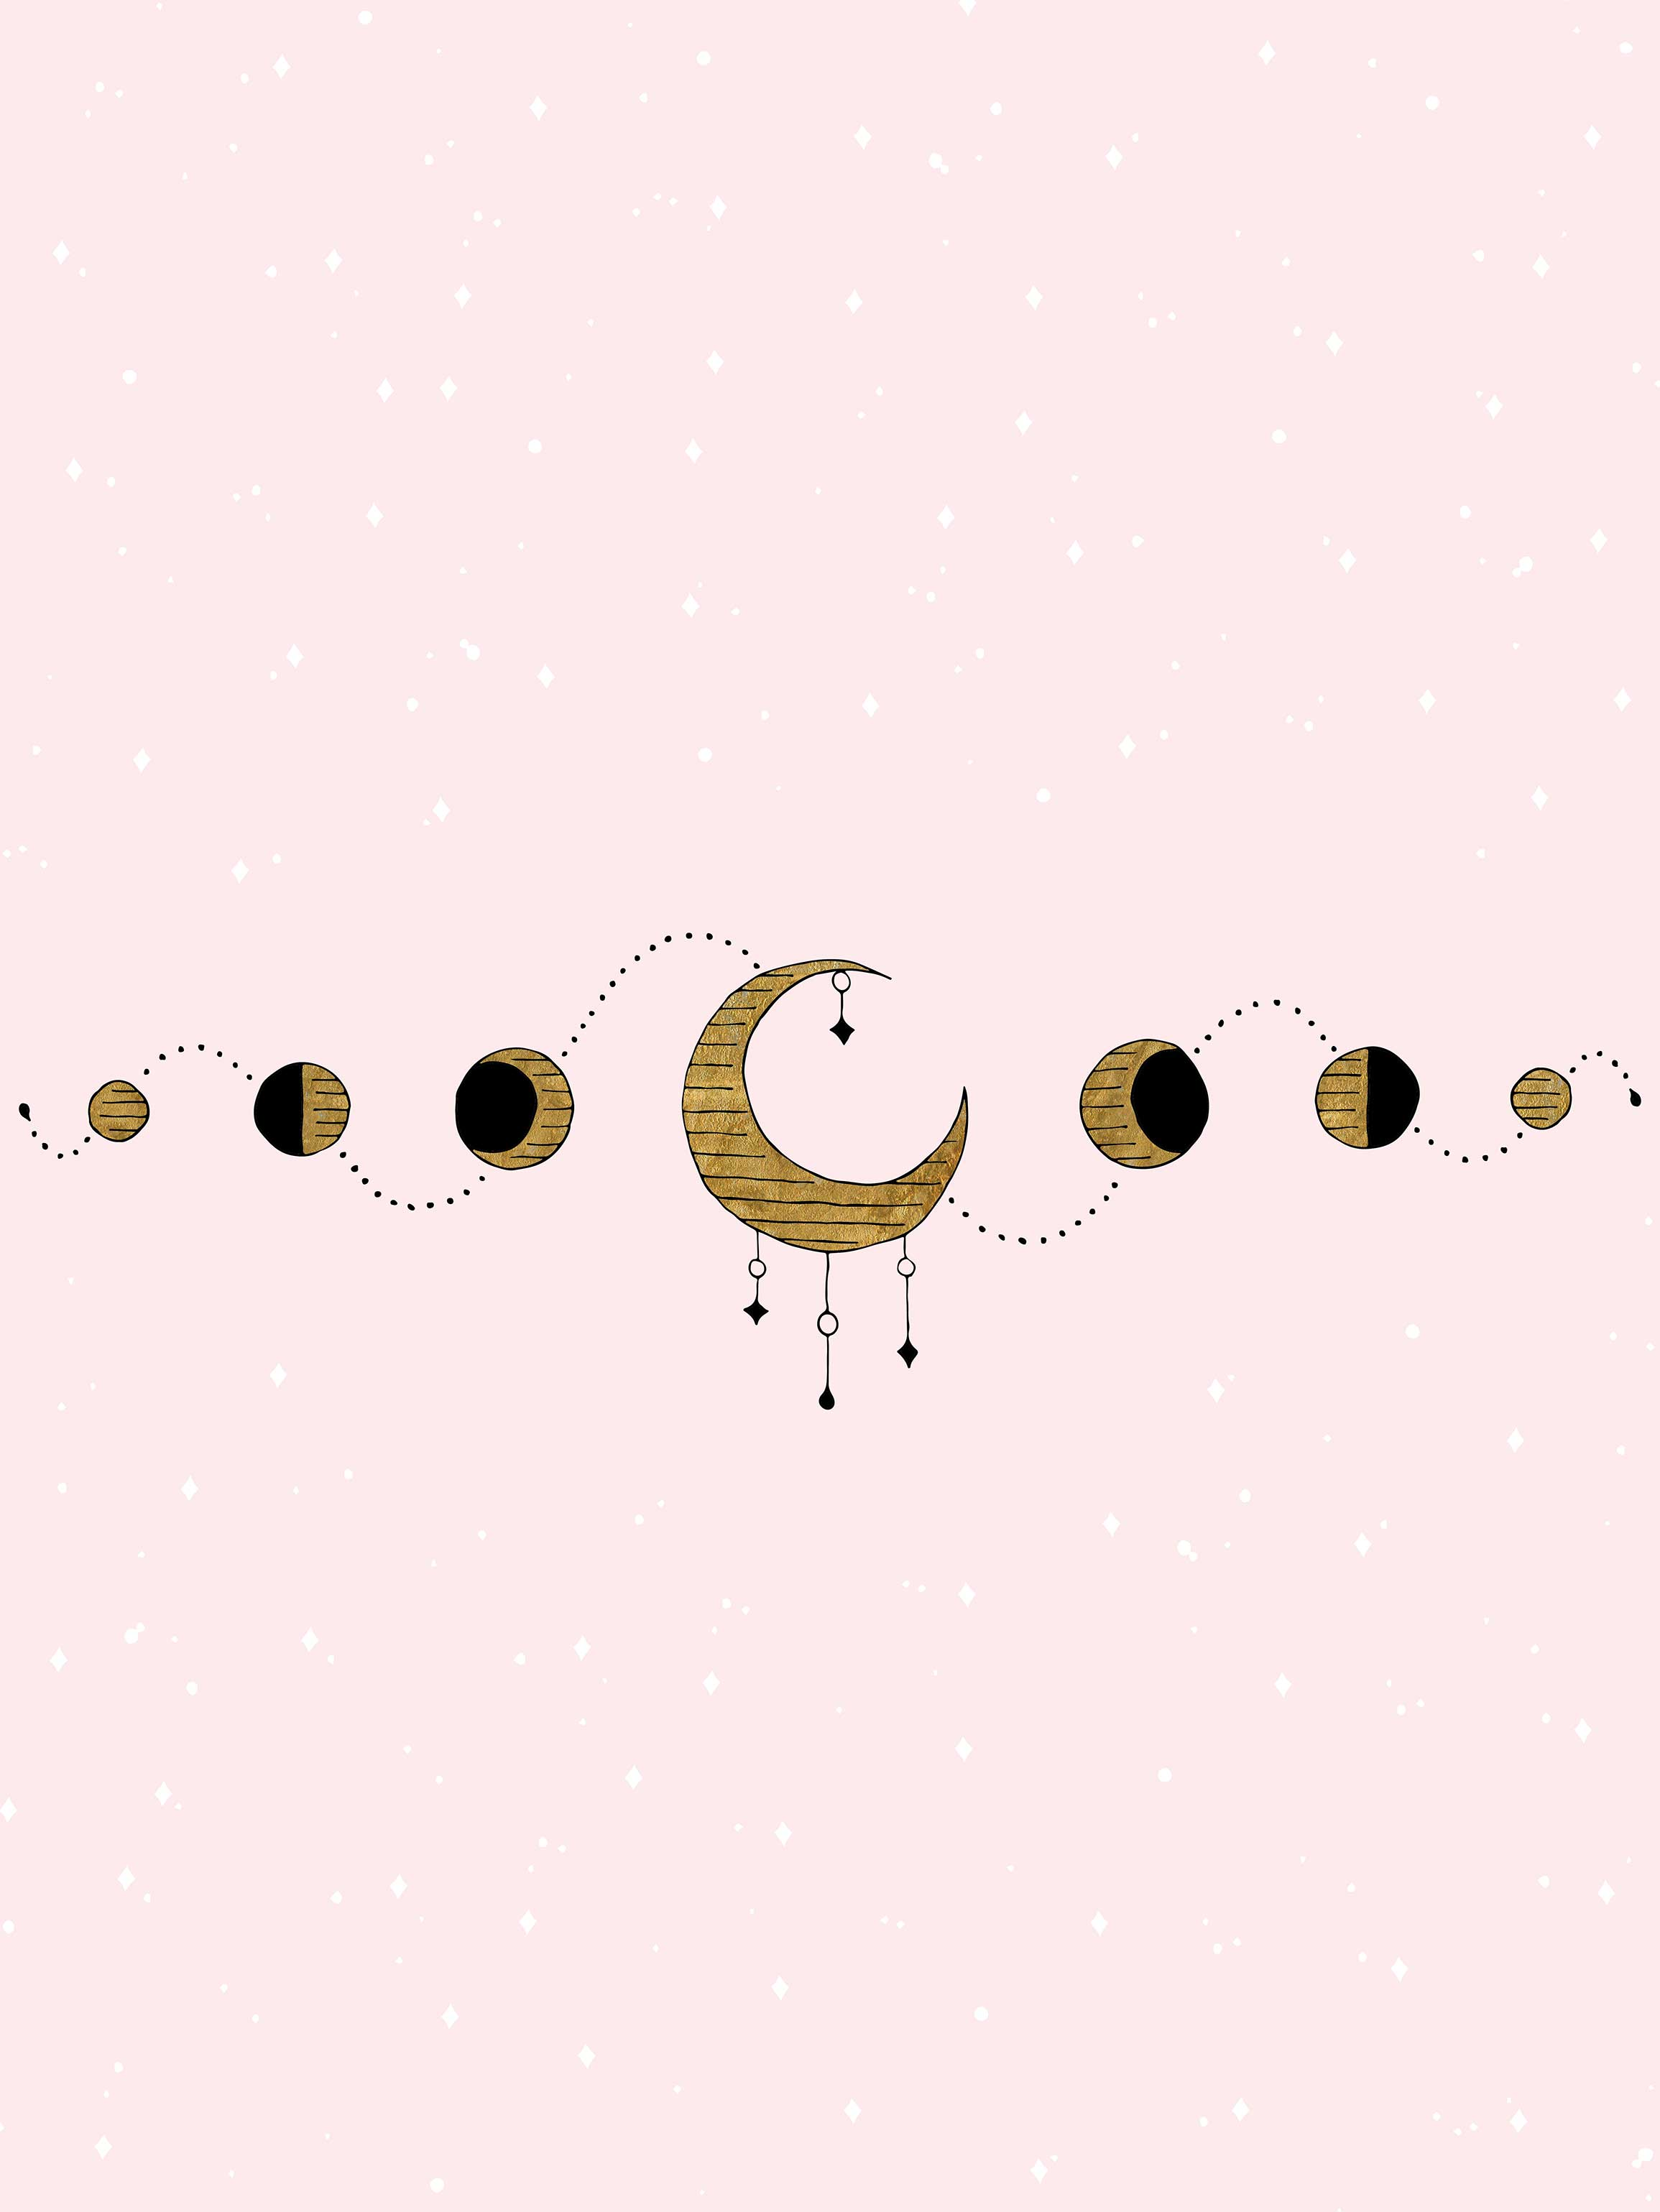 Moon Phase Wallpapers   Top Free Moon Phase Backgrounds ...